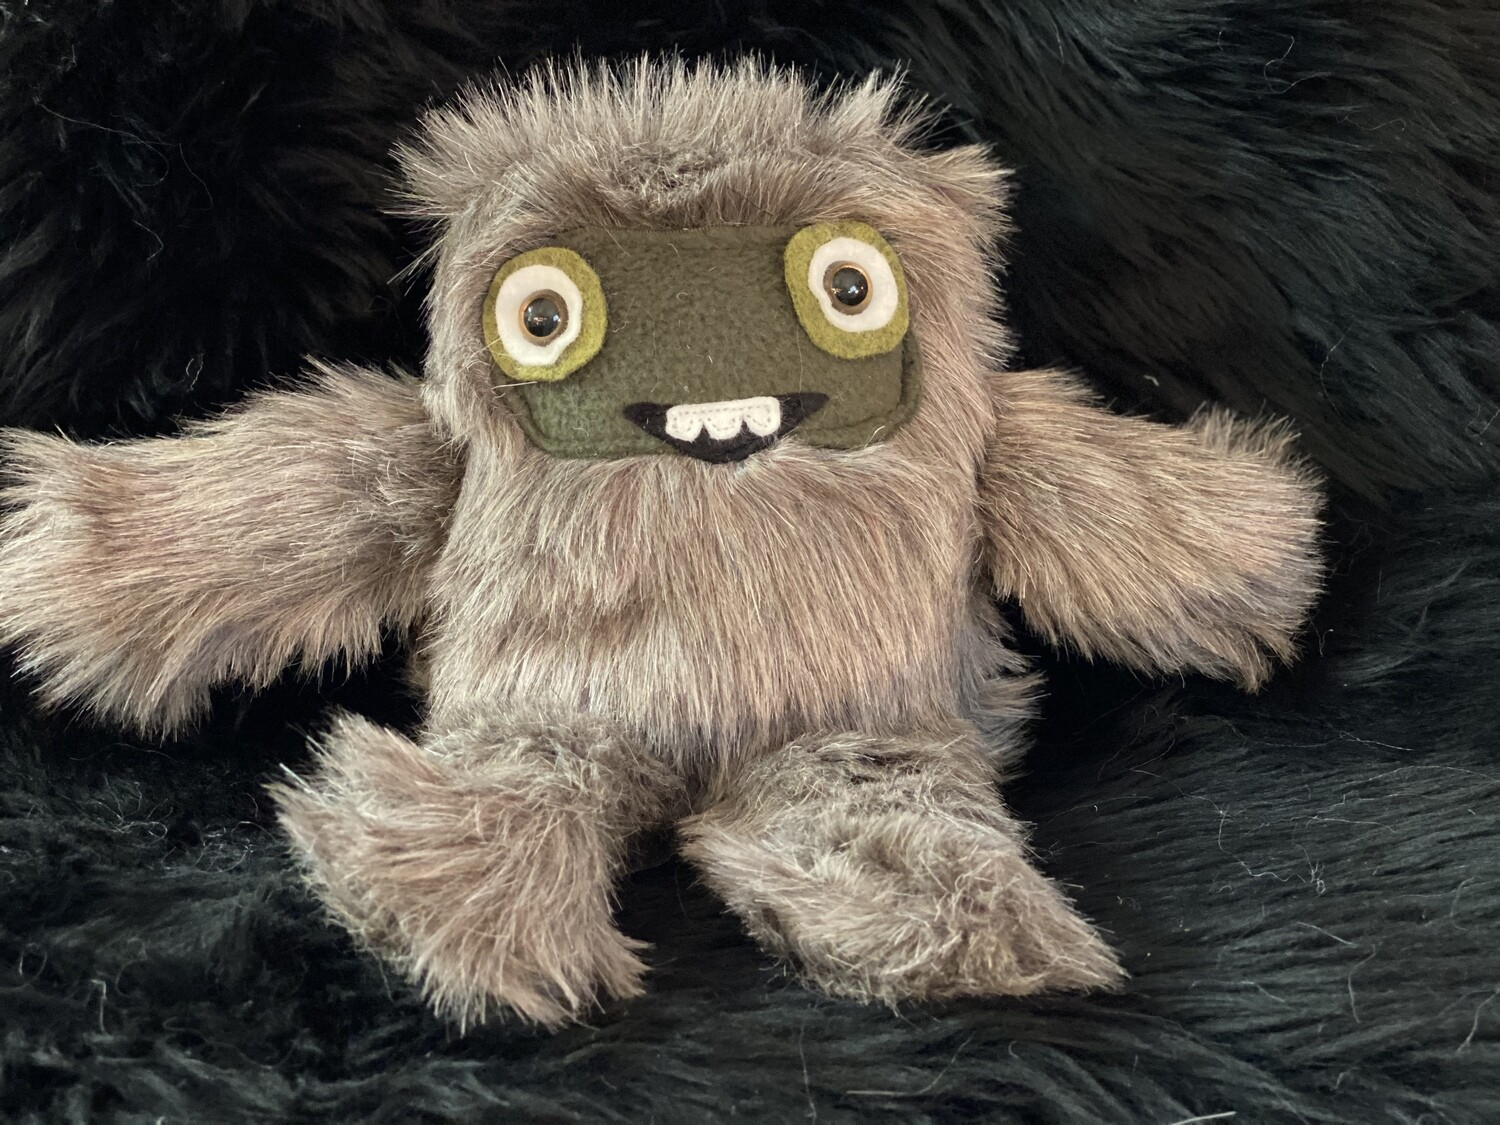 Crystal Infused Protective Snuggle Monster - Short Haired Gray with Green Felt Face